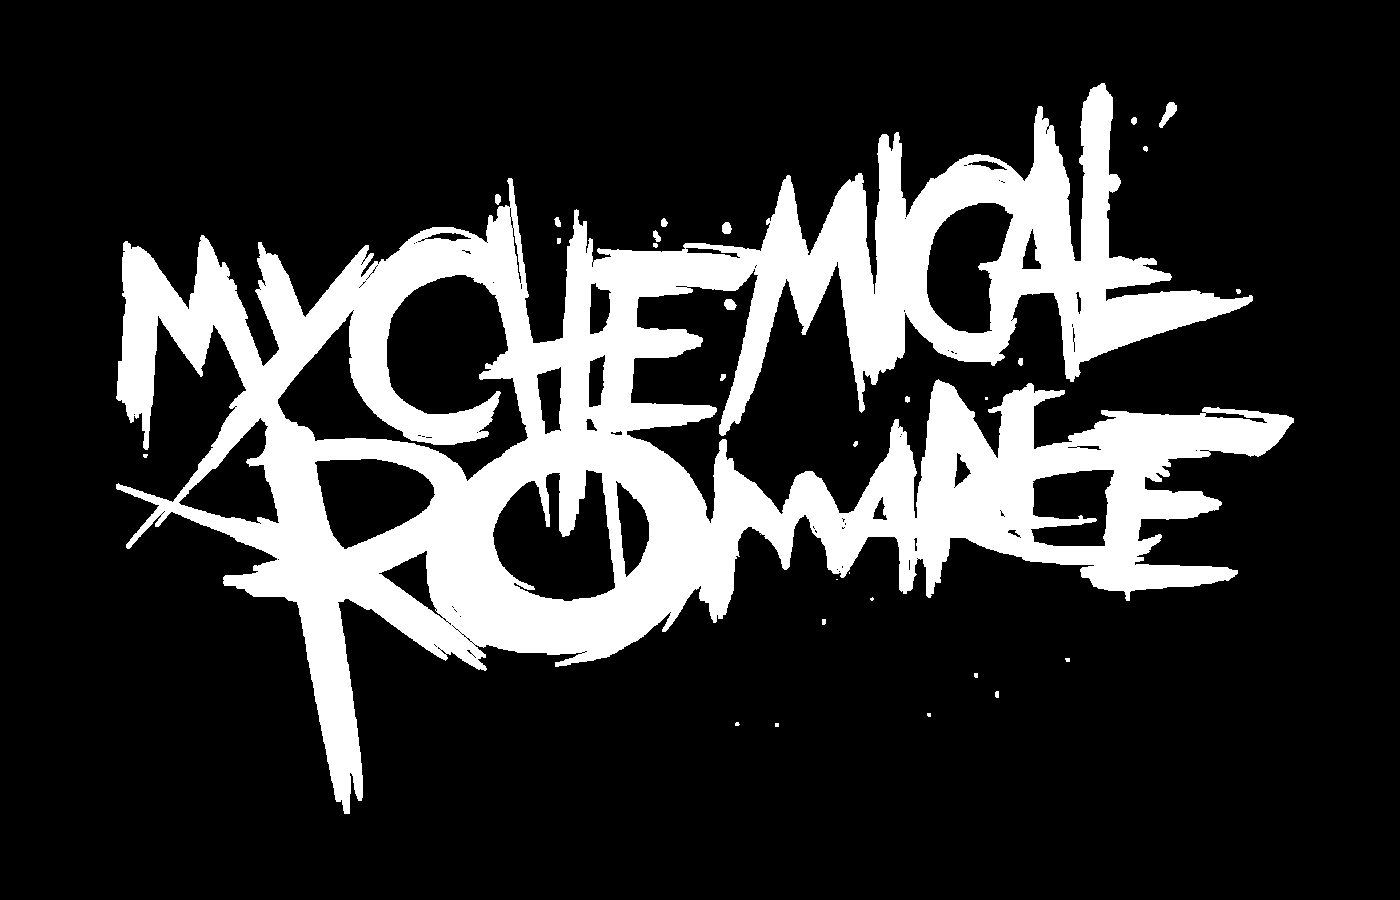 my chemical romance logo  my chemical romance symbol  meaning  history and evolution